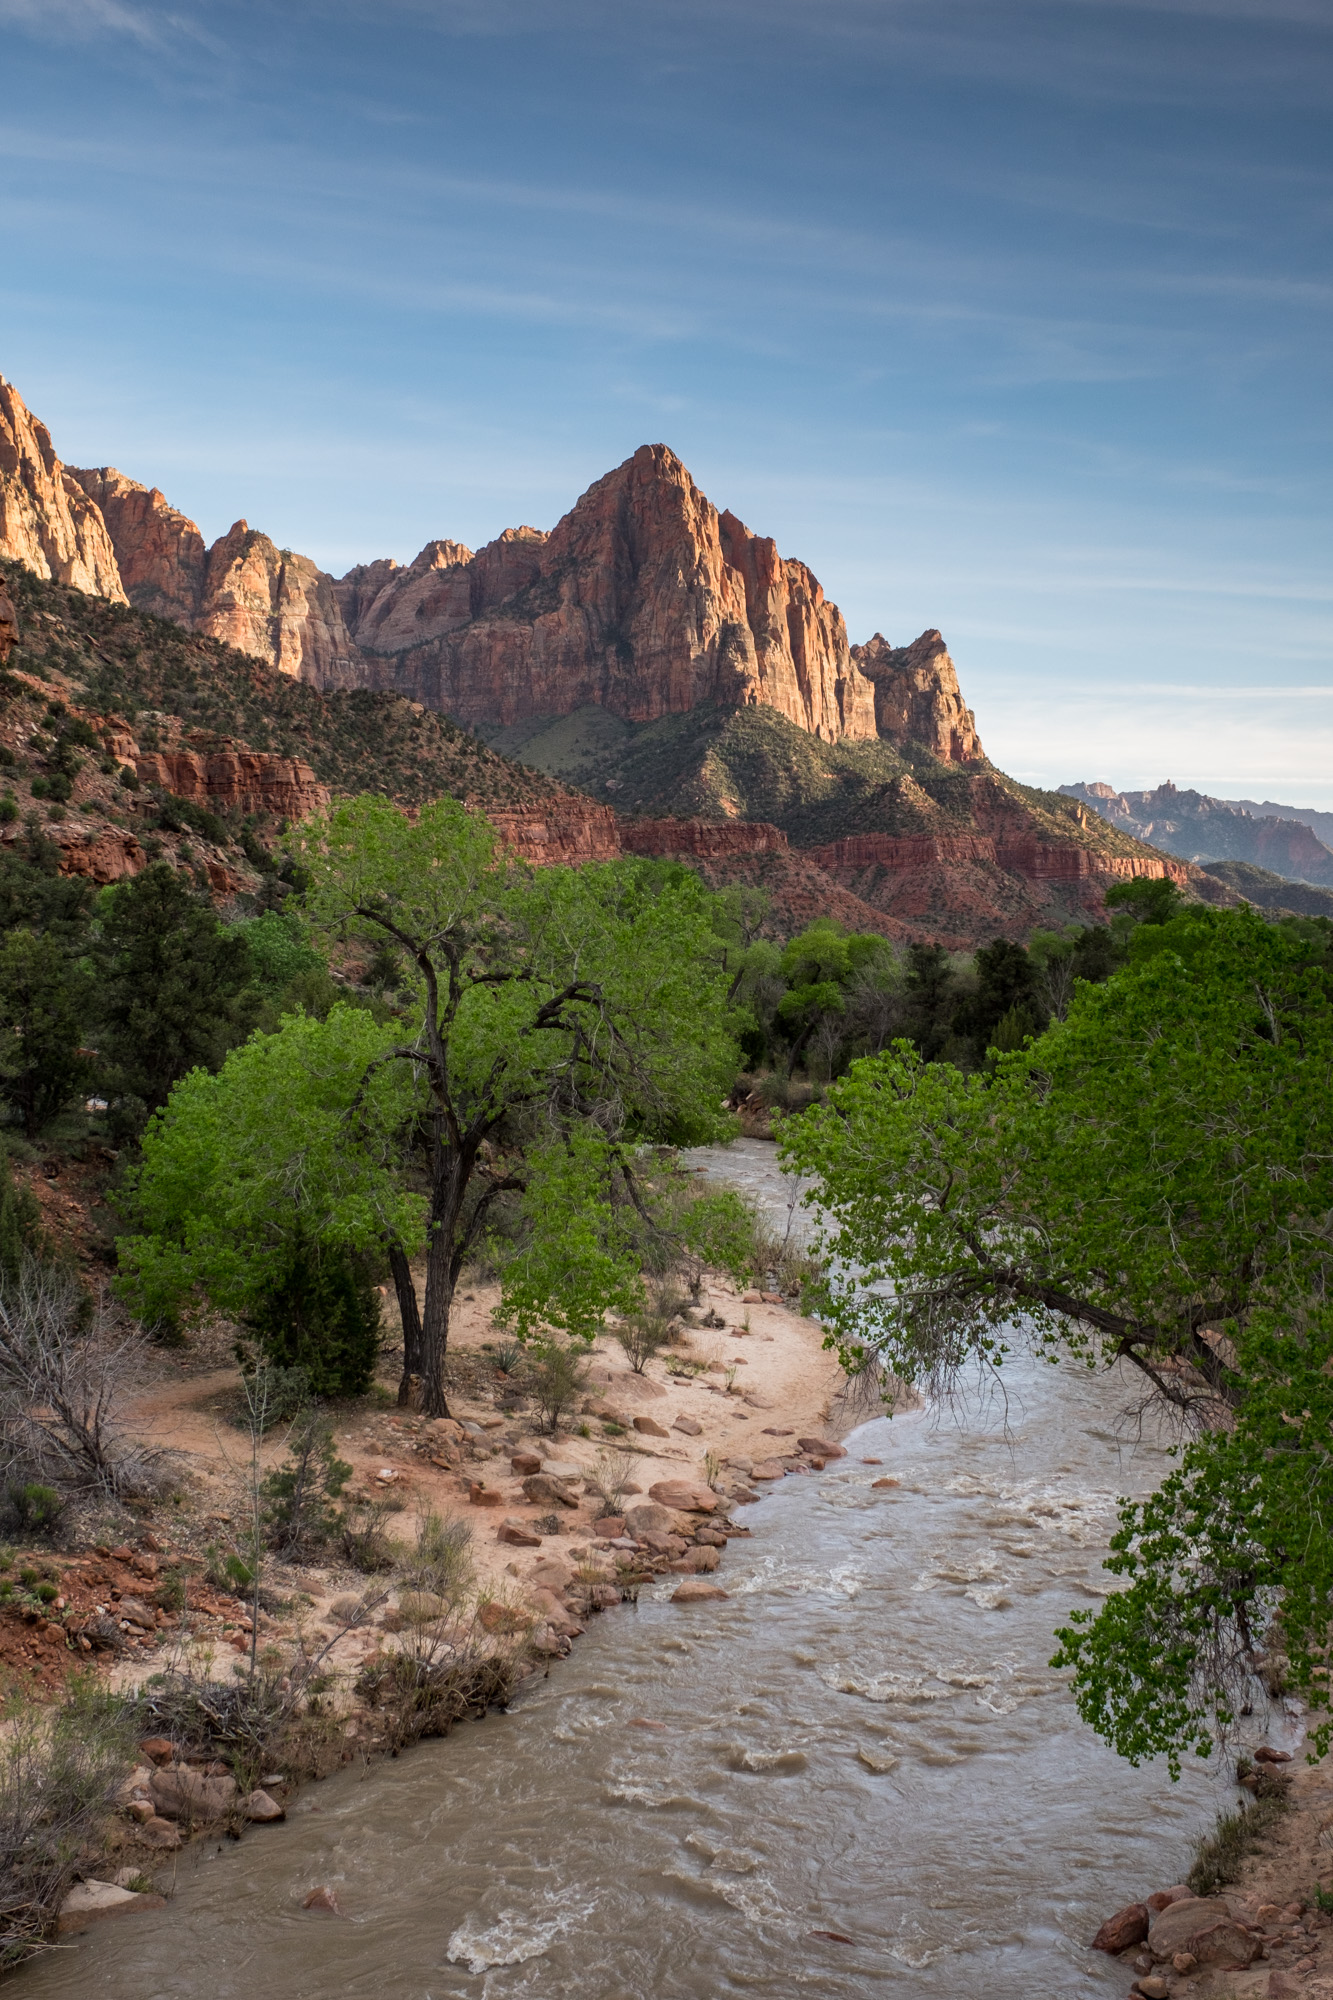 One of the more iconic shots in the park...the Watchman as seen from the Canyon Junction bridge. If you get here for sunset, you can expect to be joined by many other photographers.